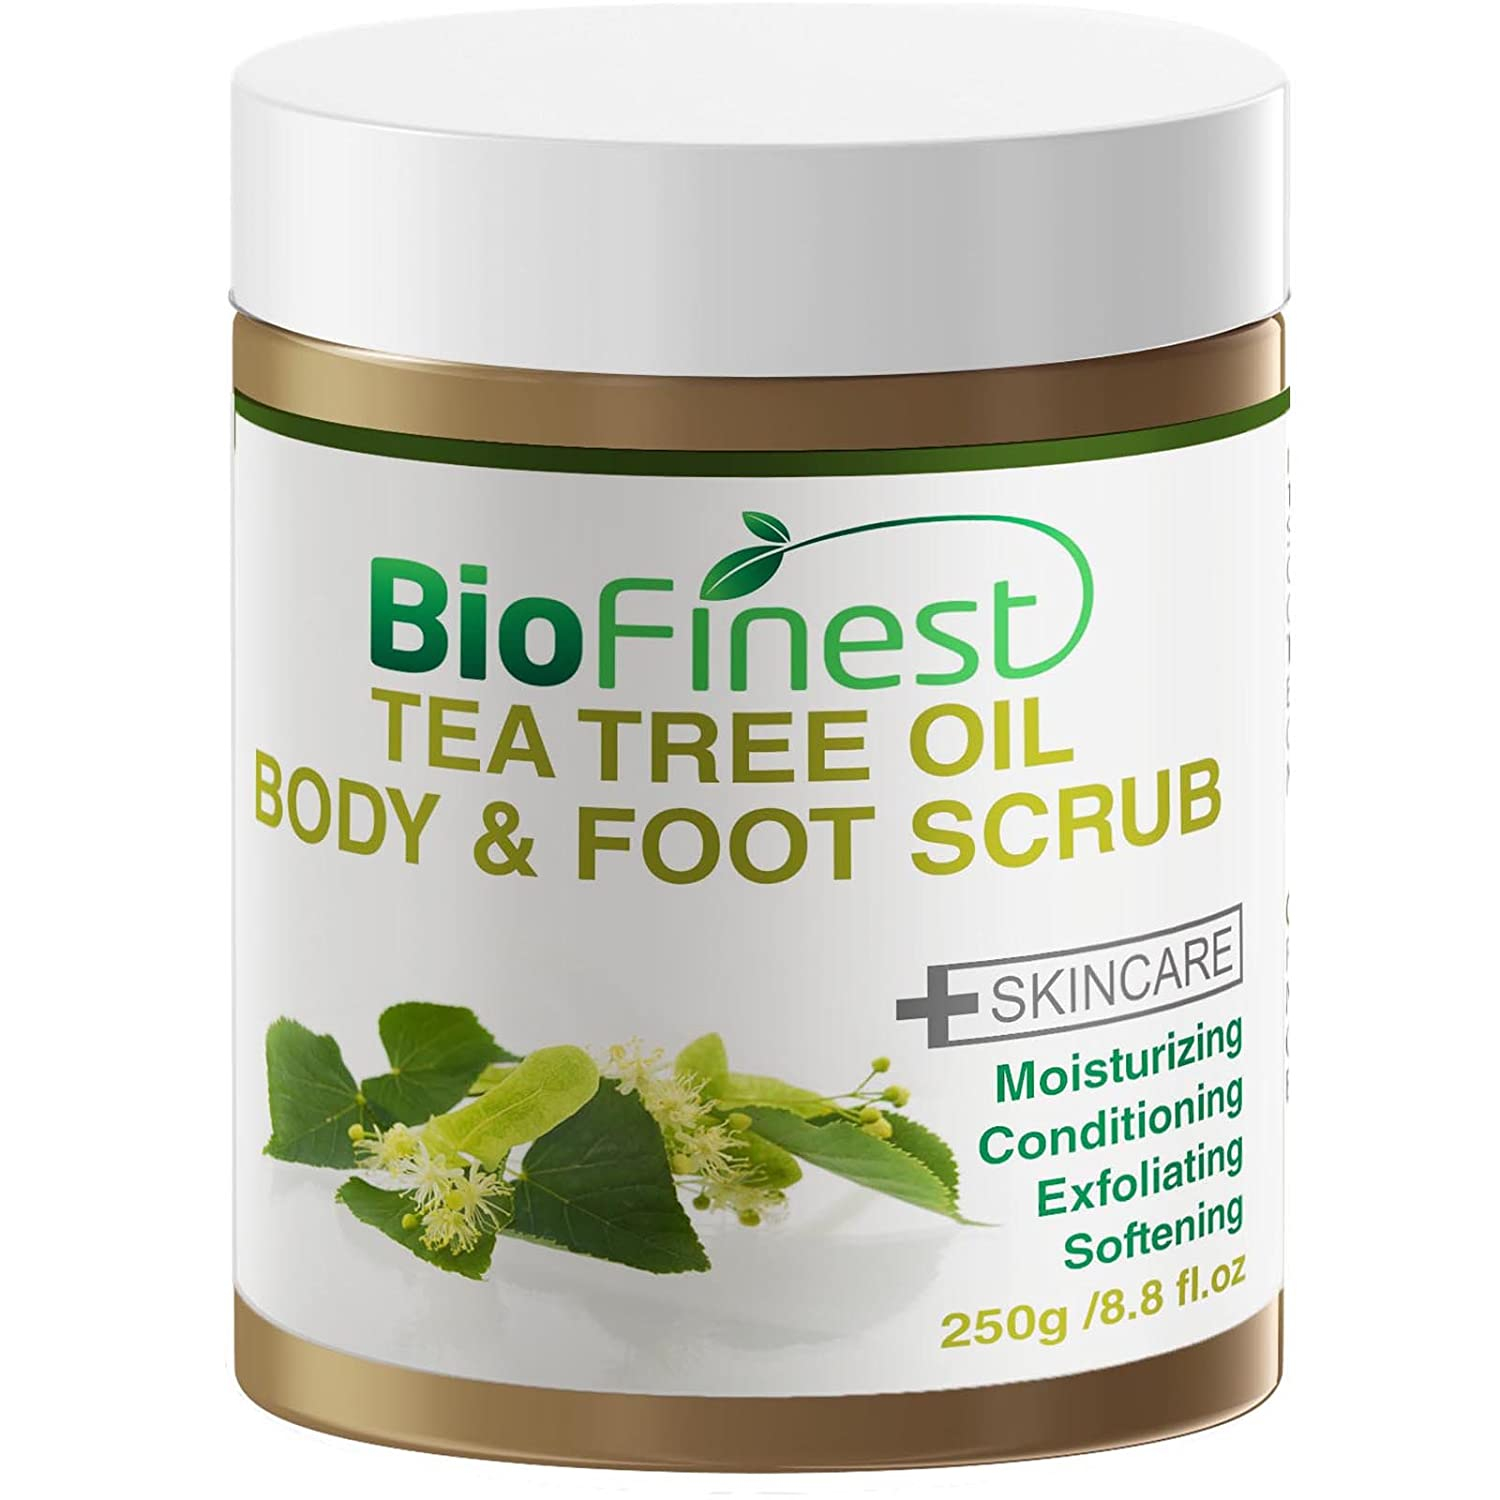 Biofinest Tea Tree Oil Body & Foot Scrub: with Dead Sea Salt, Jojoba Oil, Essential Oils - Best for Athlete Foot/Fungus/ Acne/Warts (250g)